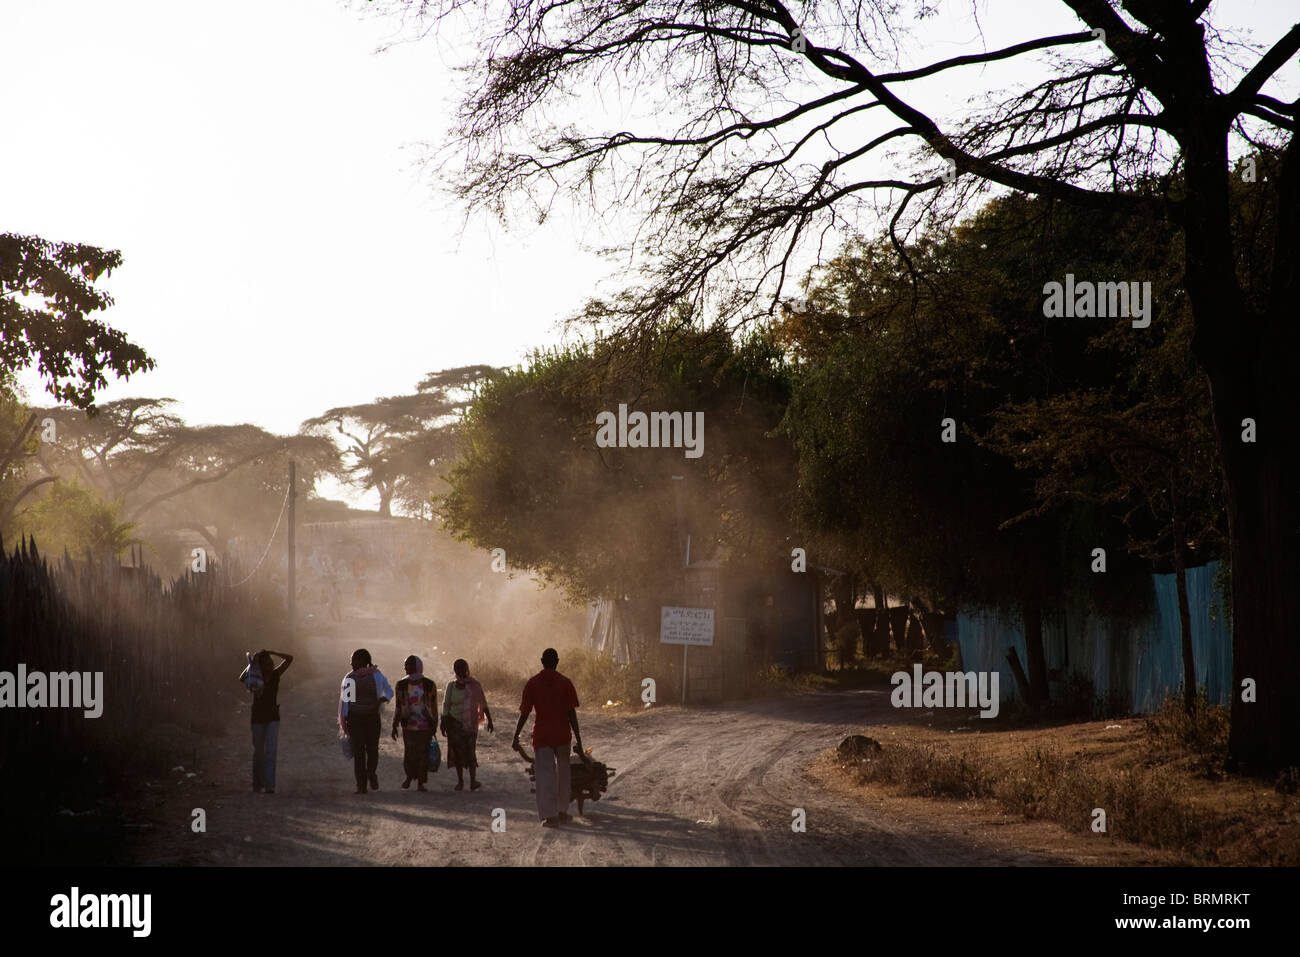 Local people walking to work on a dusty road in Awassa - Stock Image